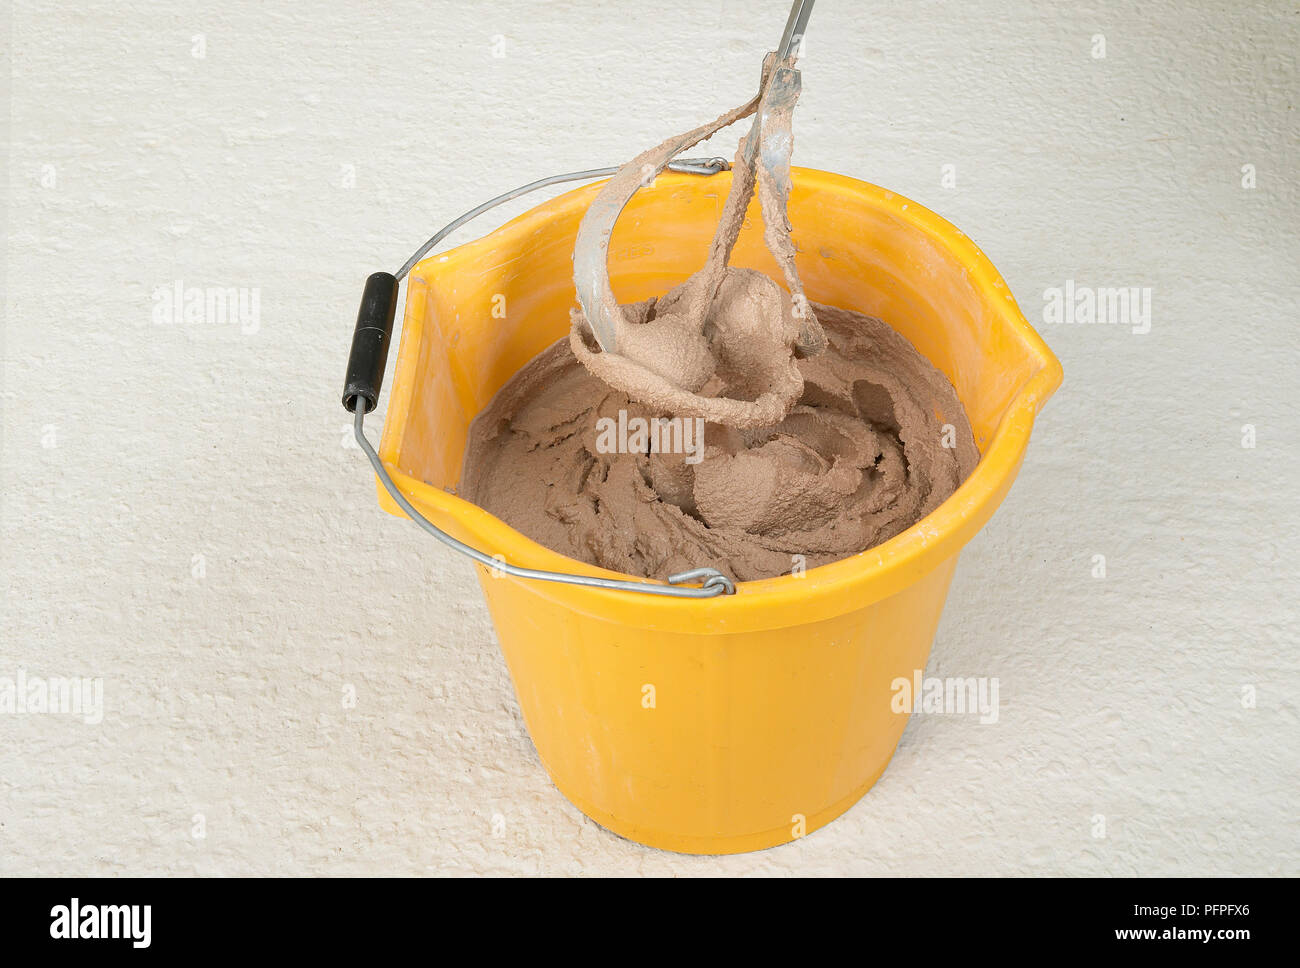 Electric stirrer in bucket of plaster Stock Photo